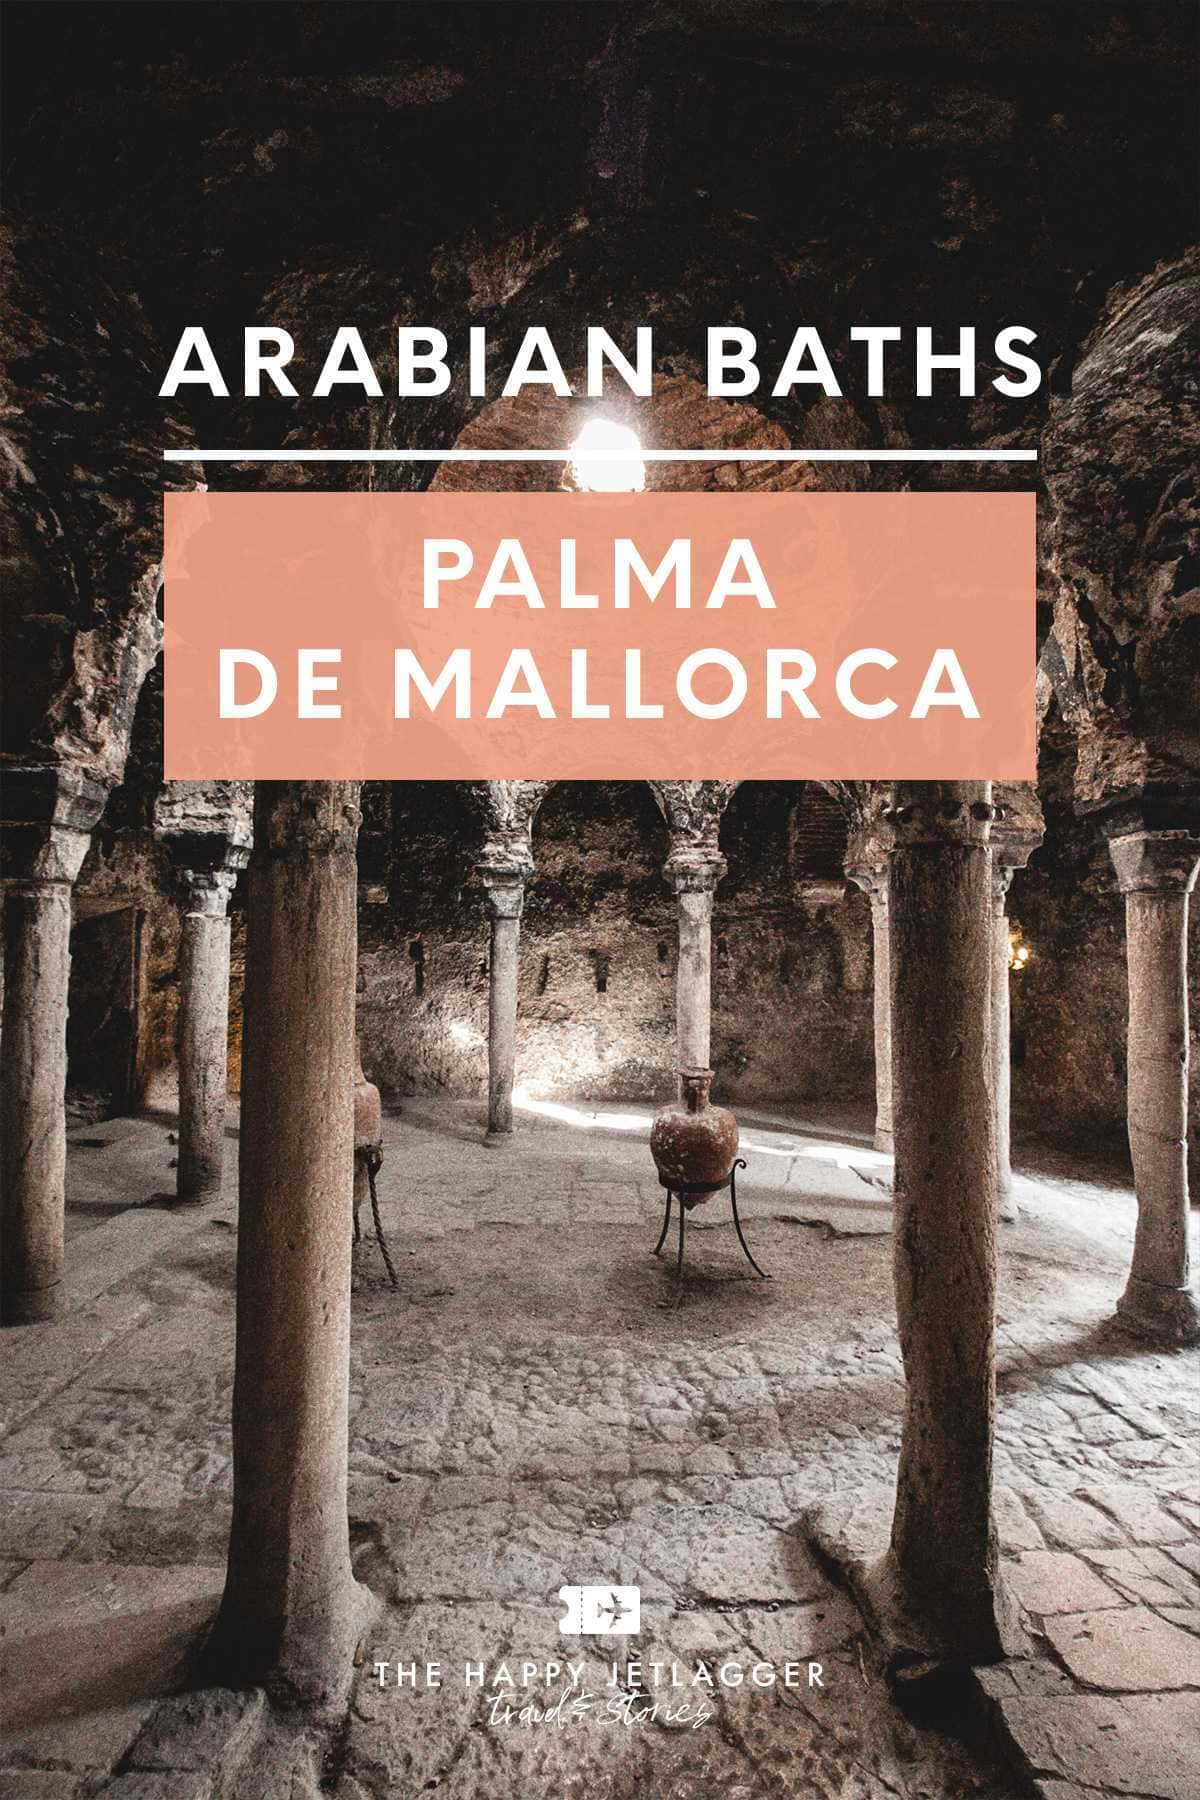 Arabian Baths Palma